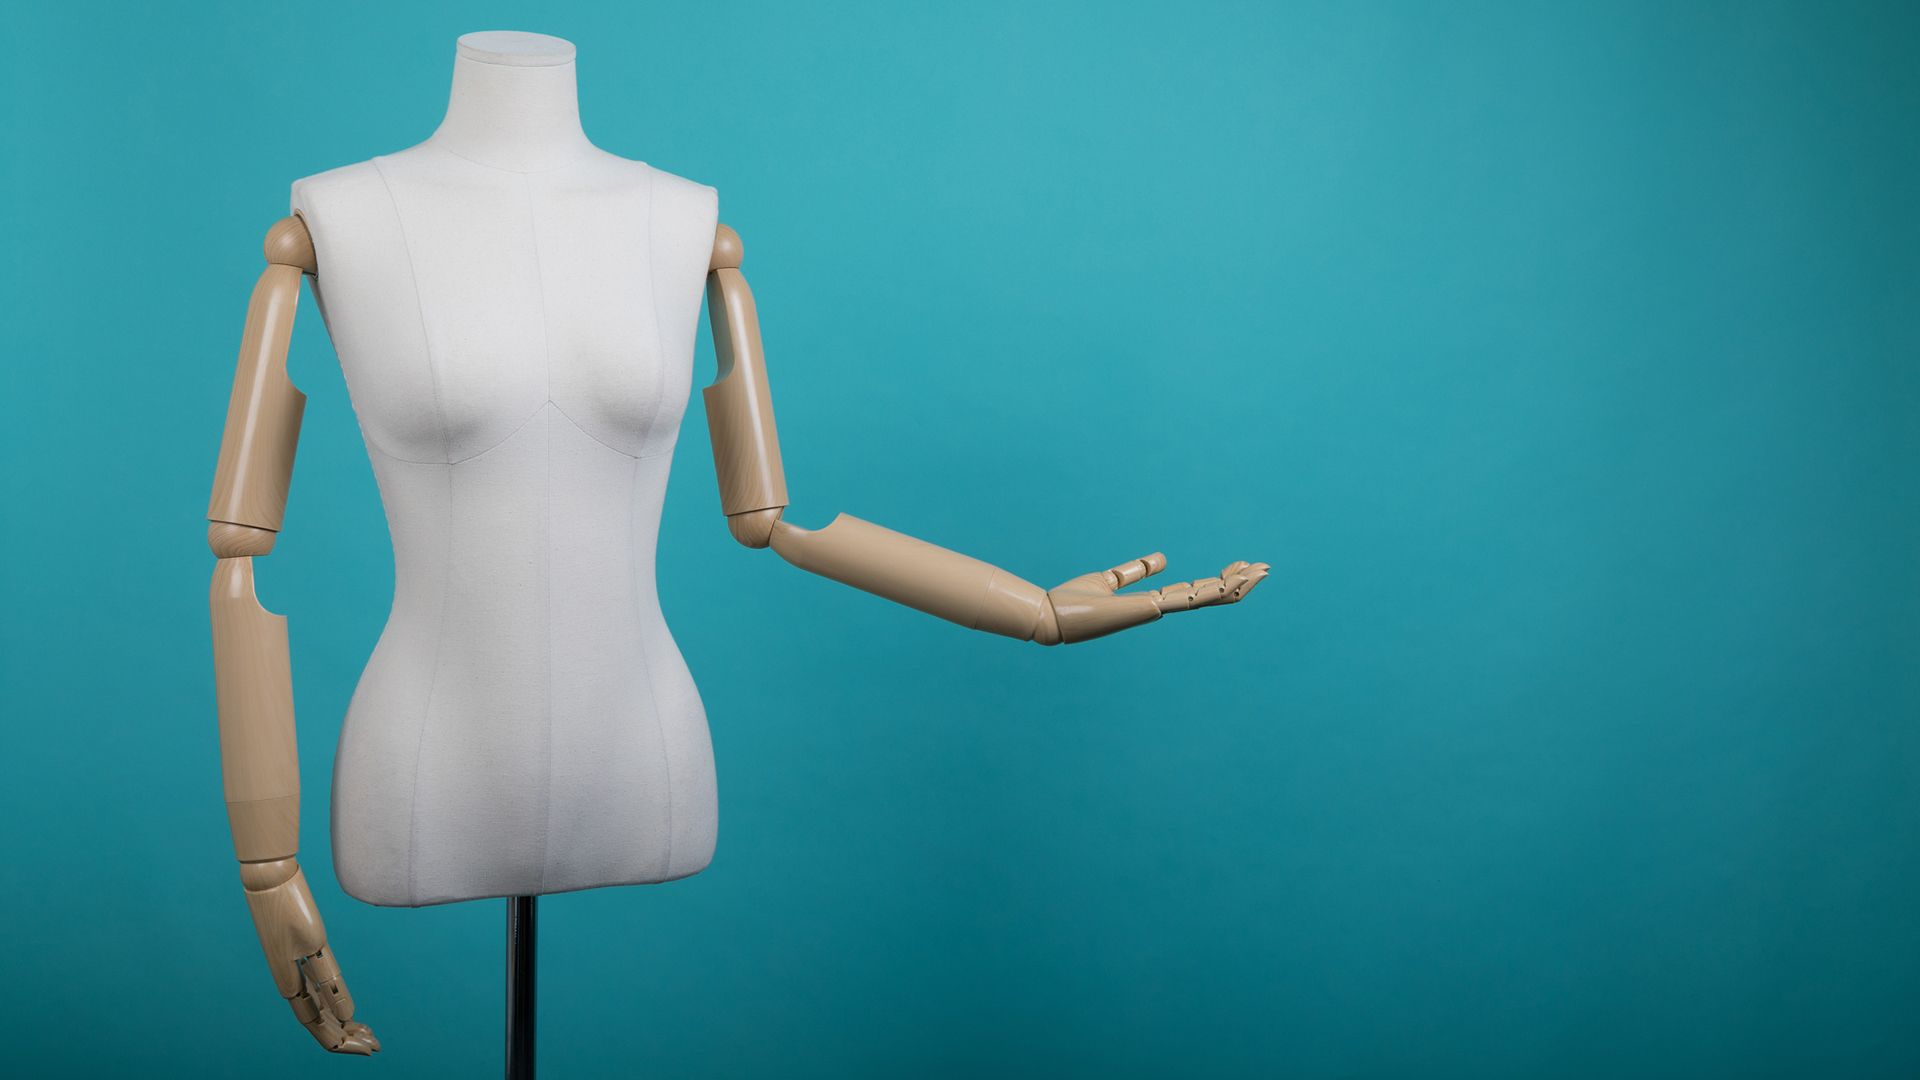 Mannequin with bent arm (Credit: Getty Images)